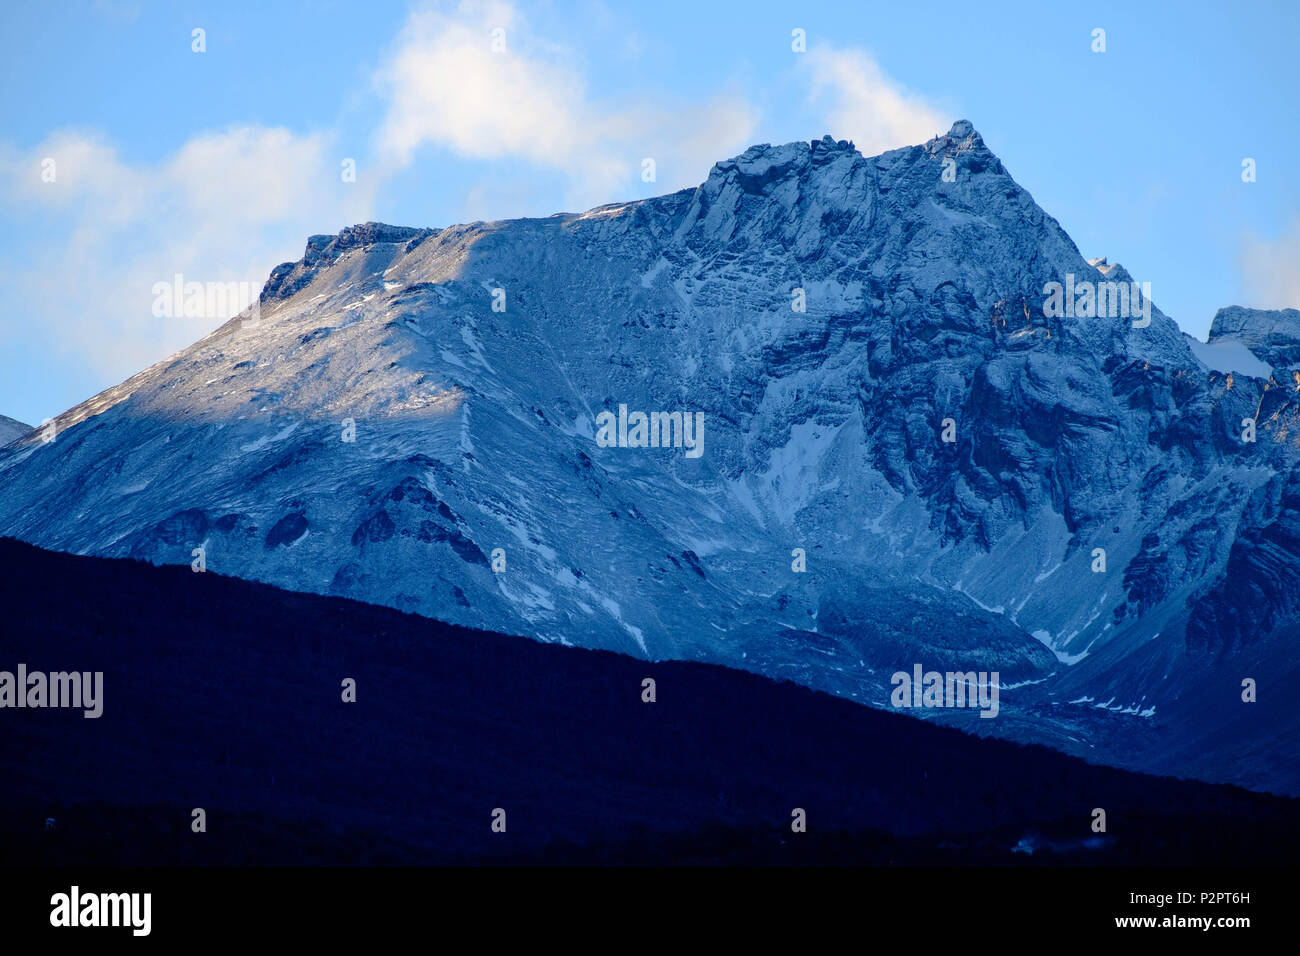 One of the Martial mountains that surround Ushuaia seemingly has a blue colour. It received little snow that slightly changed its colour. - Stock Image